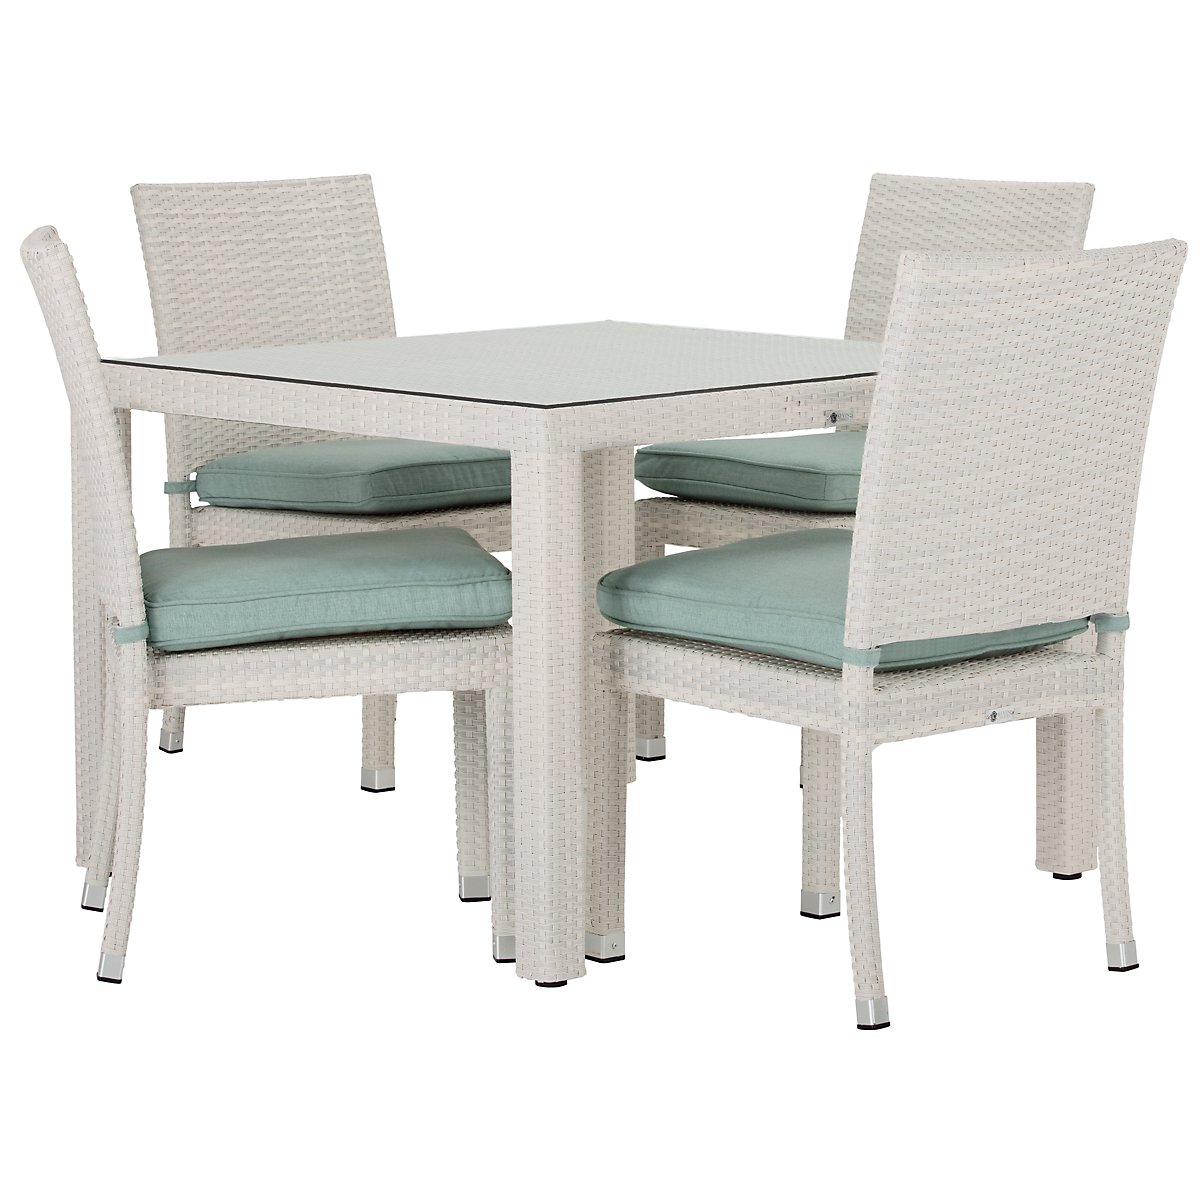 "Bahia Teal 40"" Square Table & 4 Chairs"